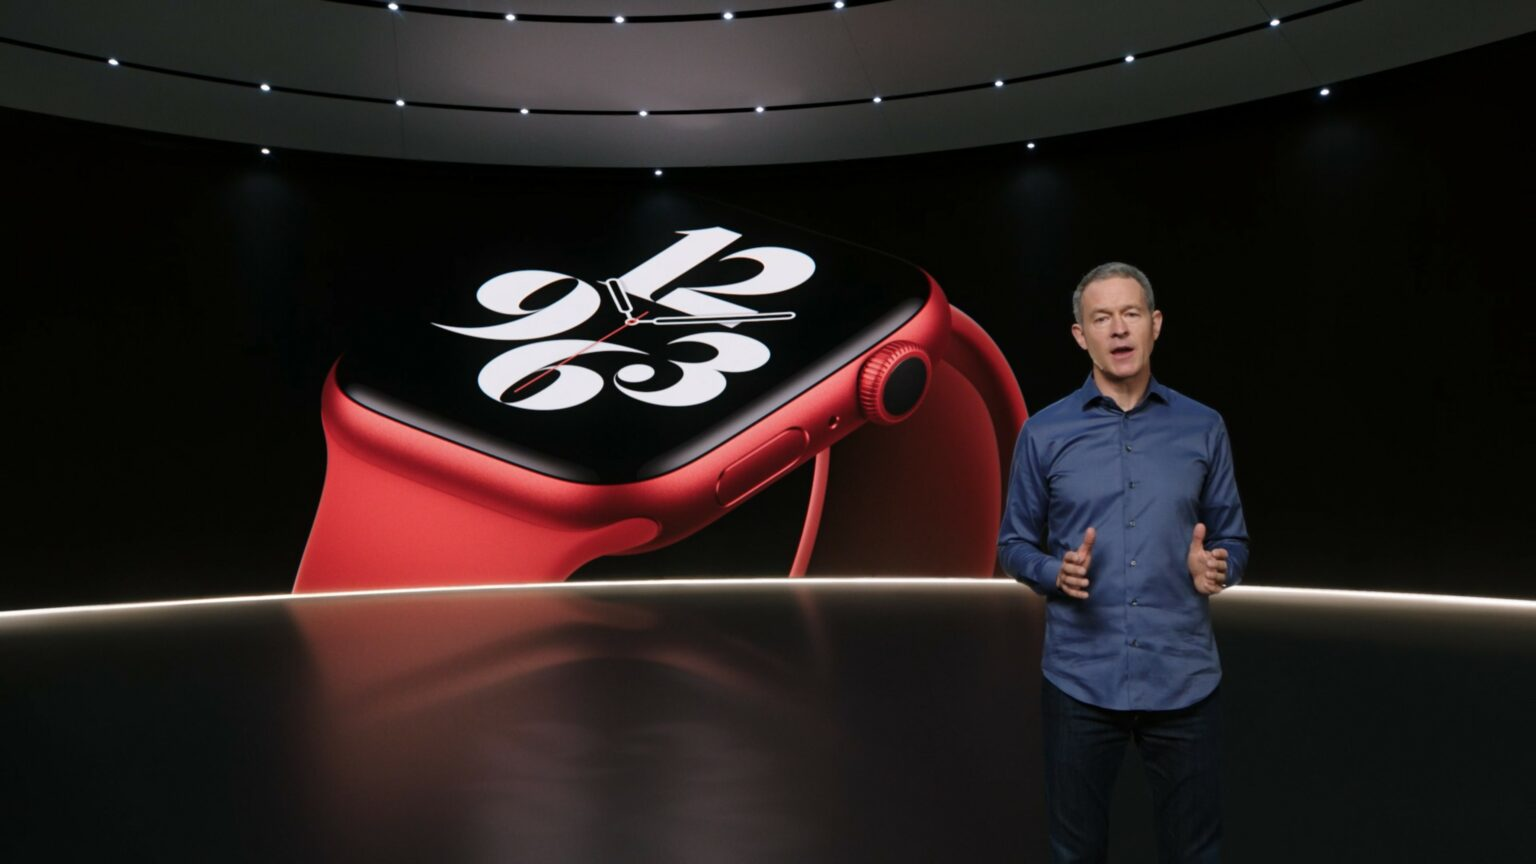 For the first time, there's a Product Red Apple Watch.